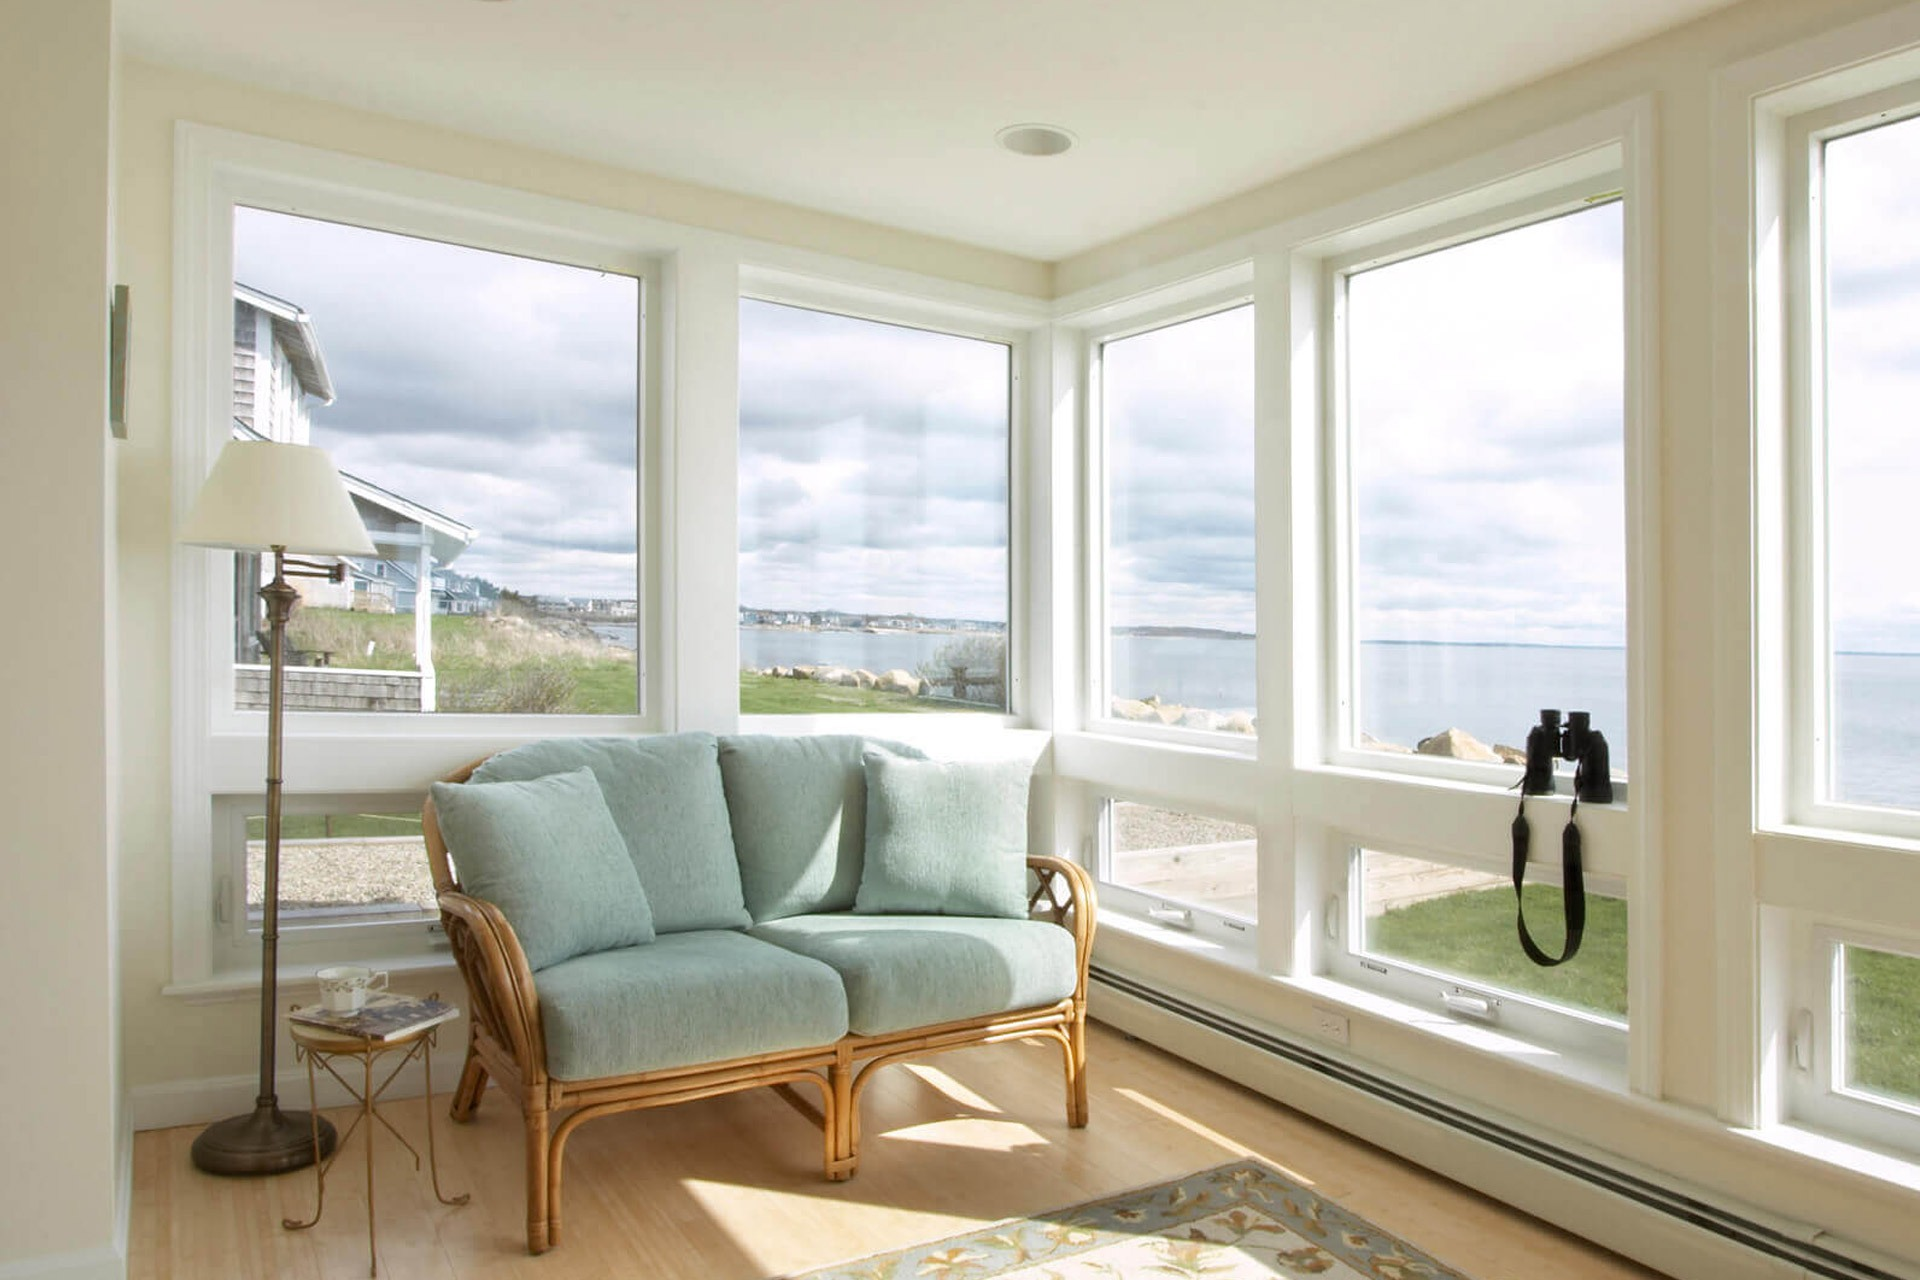 A sitting area in a beachfront home with floor-to-ceiling windows that a homeowner will need to prepare for hurricane season